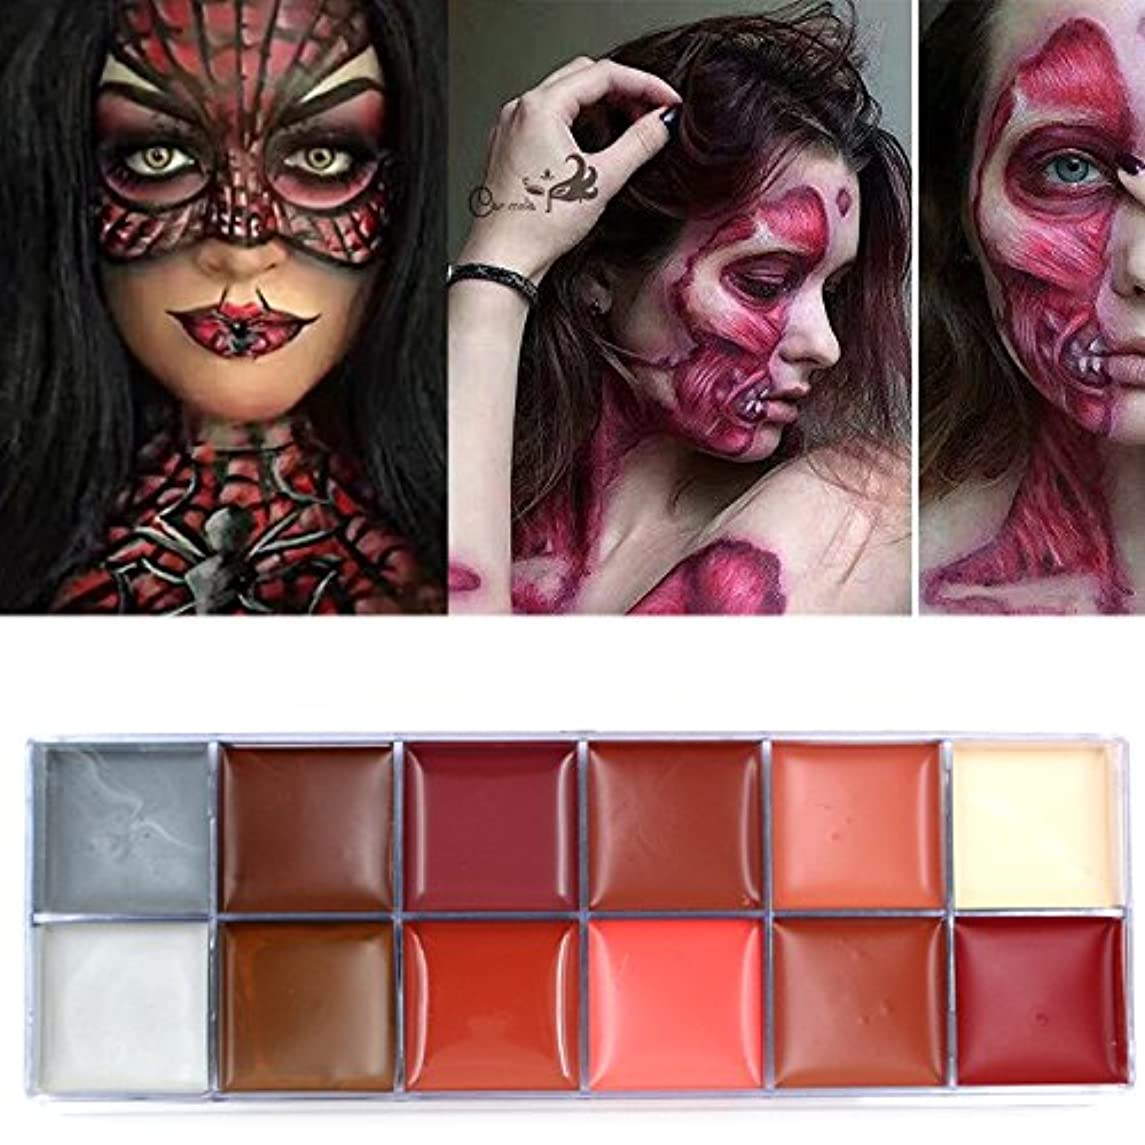 Body Painting Flash Tattoo Imagic Brand 12 Colors Face Paint Palette Halloween Makeup Temporary Tatoos Glowing Painting Make Up #2